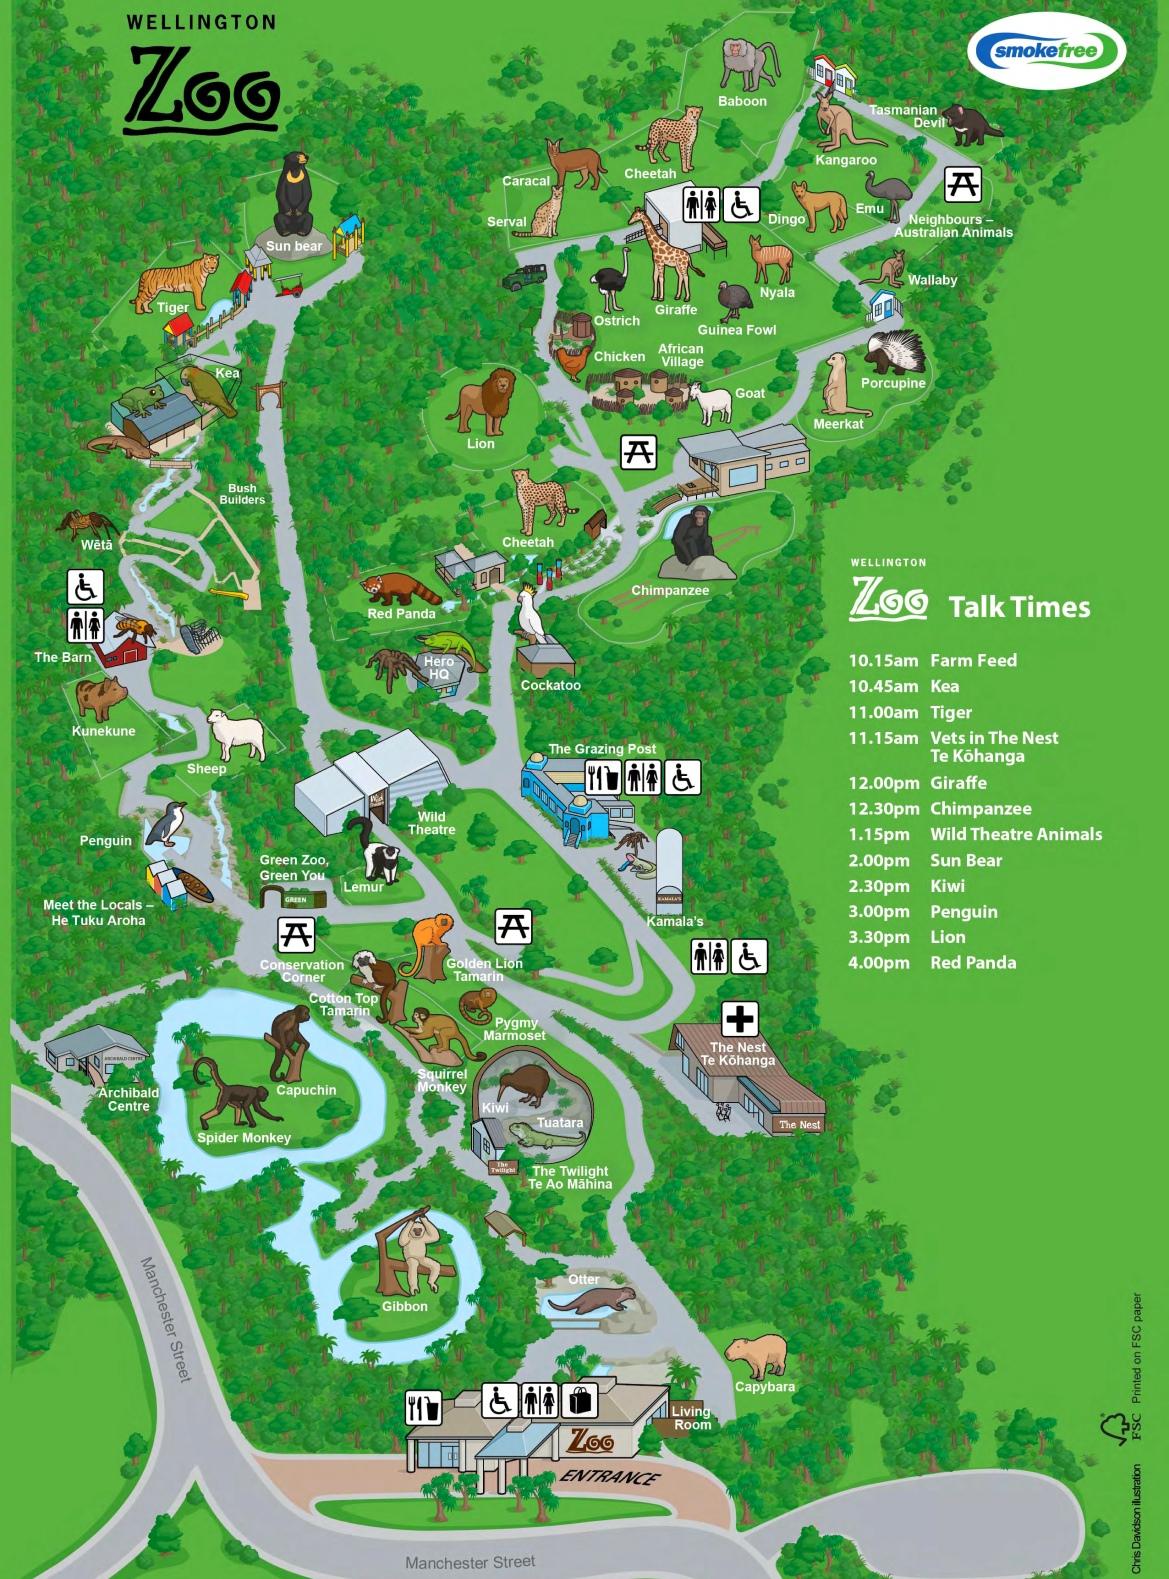 Map Of Wellington New Zealand.Wellington Zoo Map